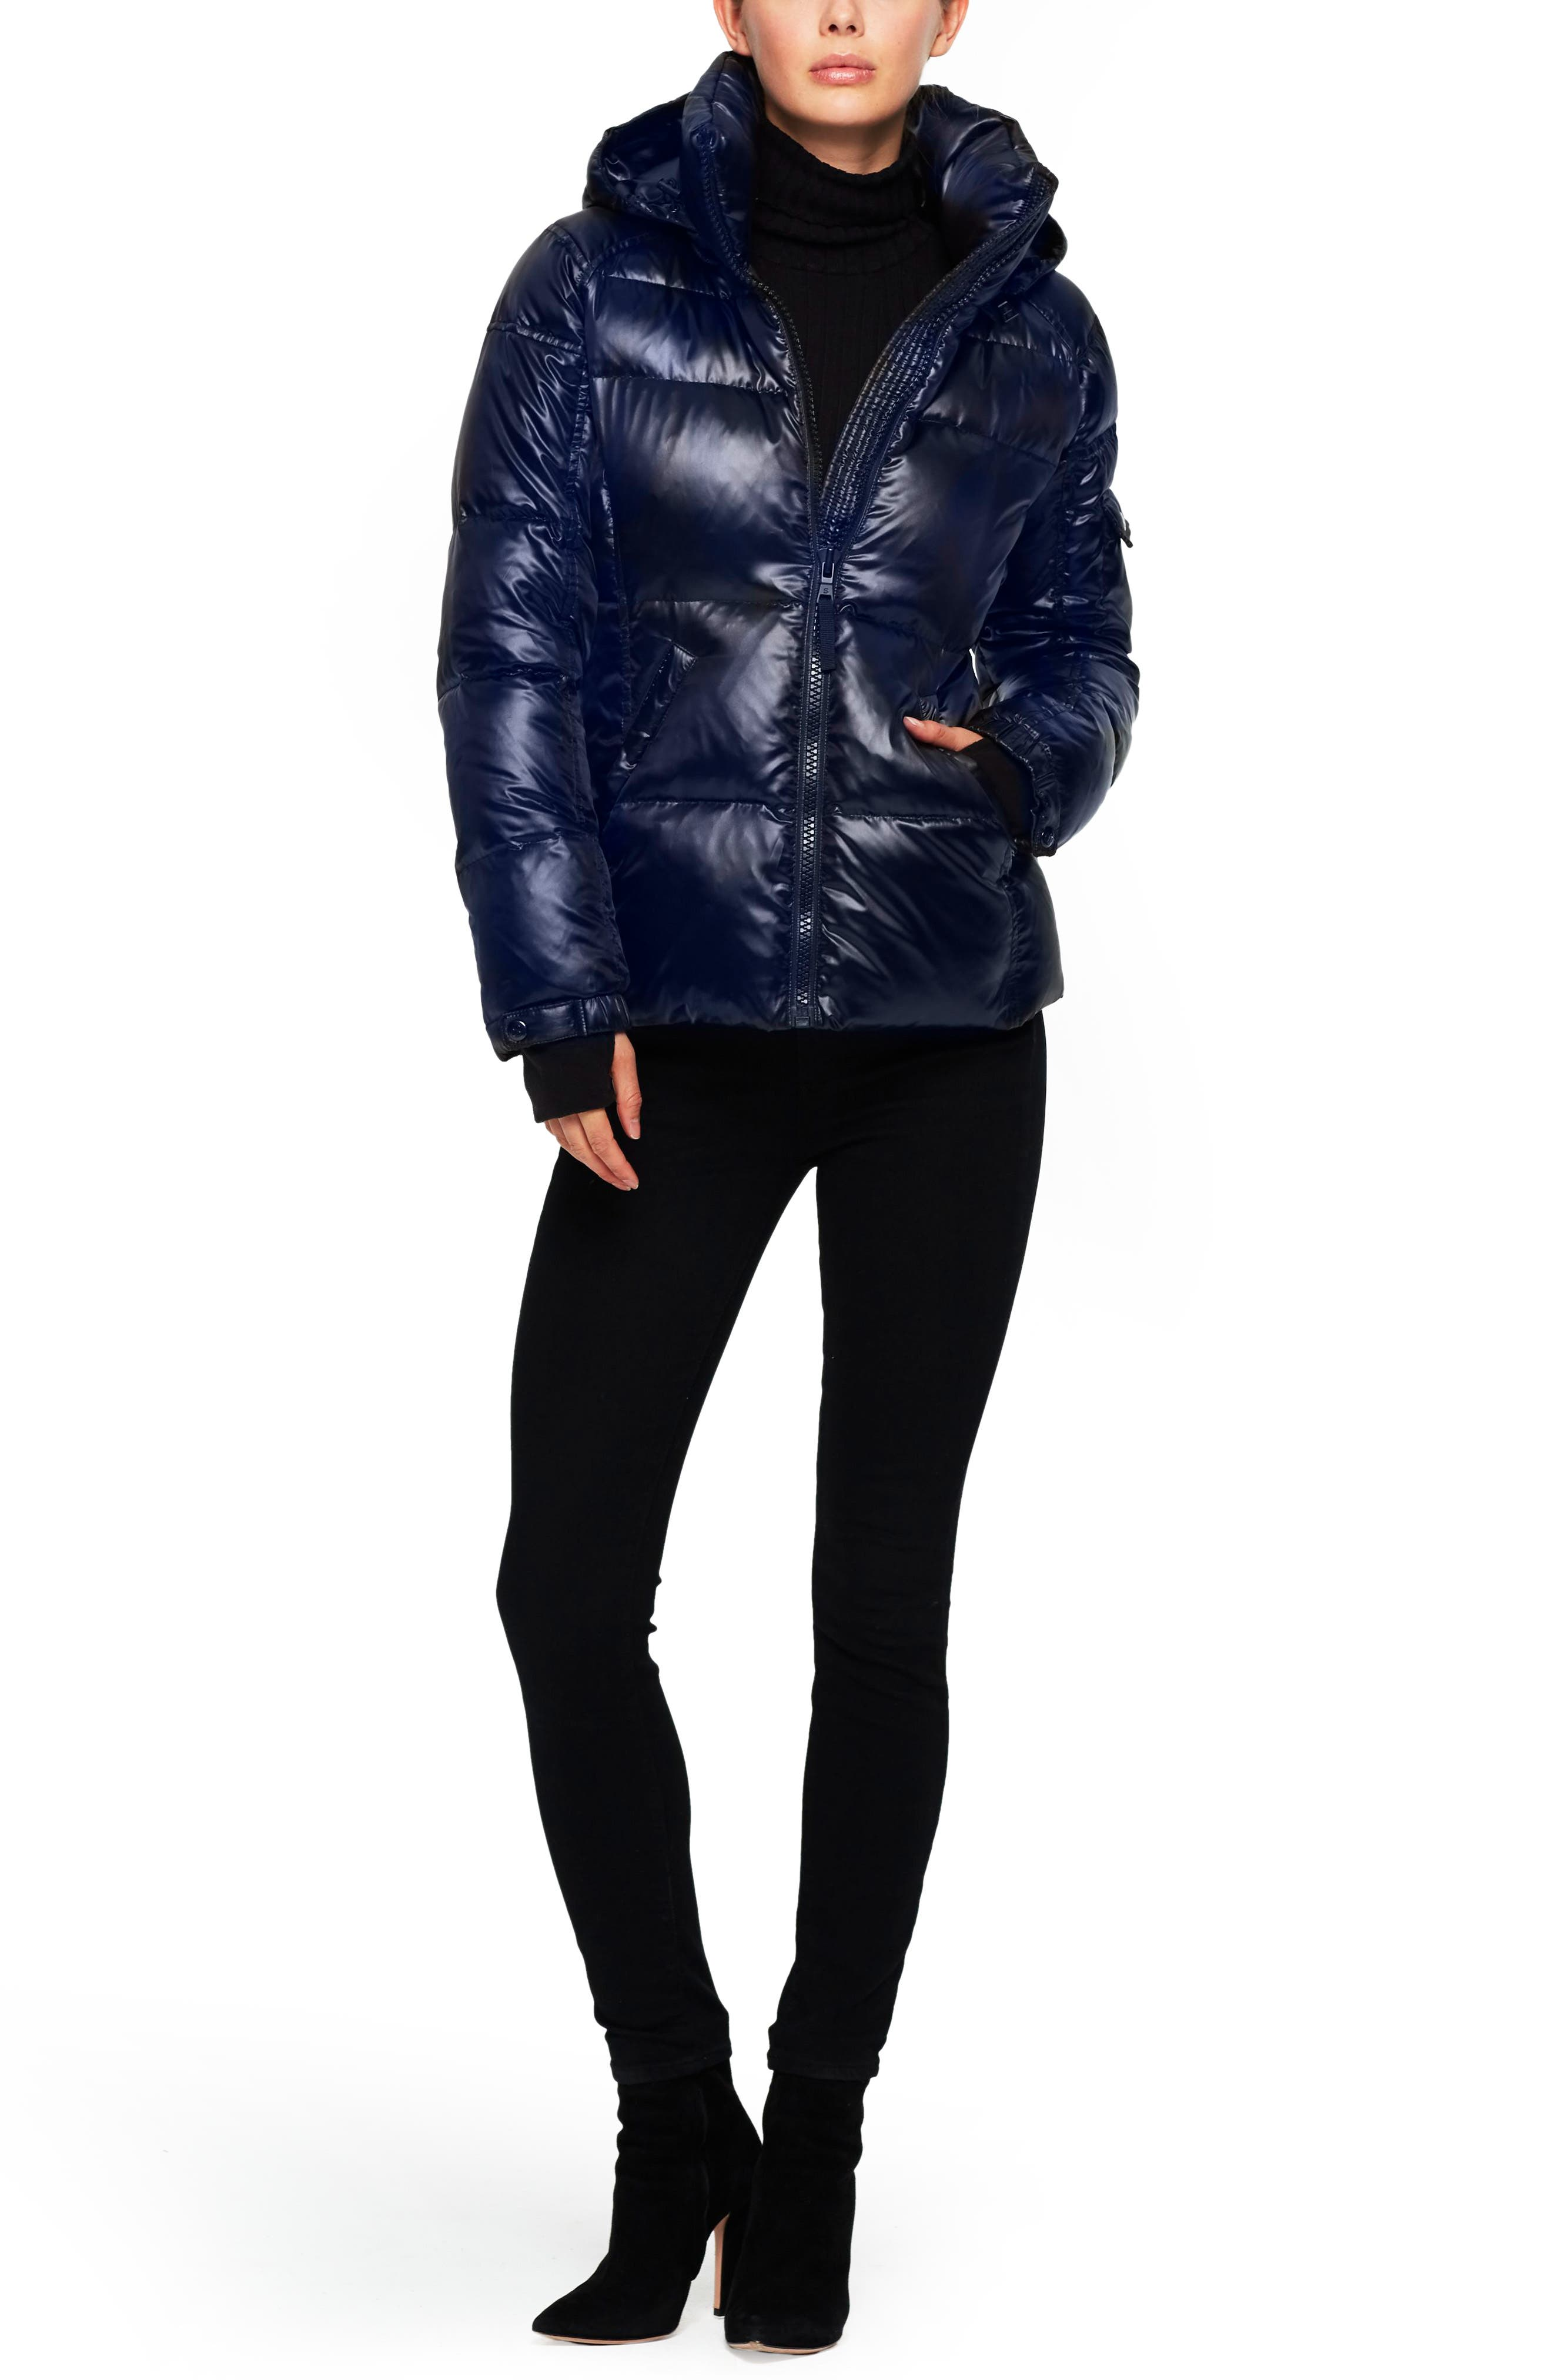 SAM S13/NYC Kylie Metallic Quilted Jacket with Removable Hood,                             Main thumbnail 1, color,                             Midnight